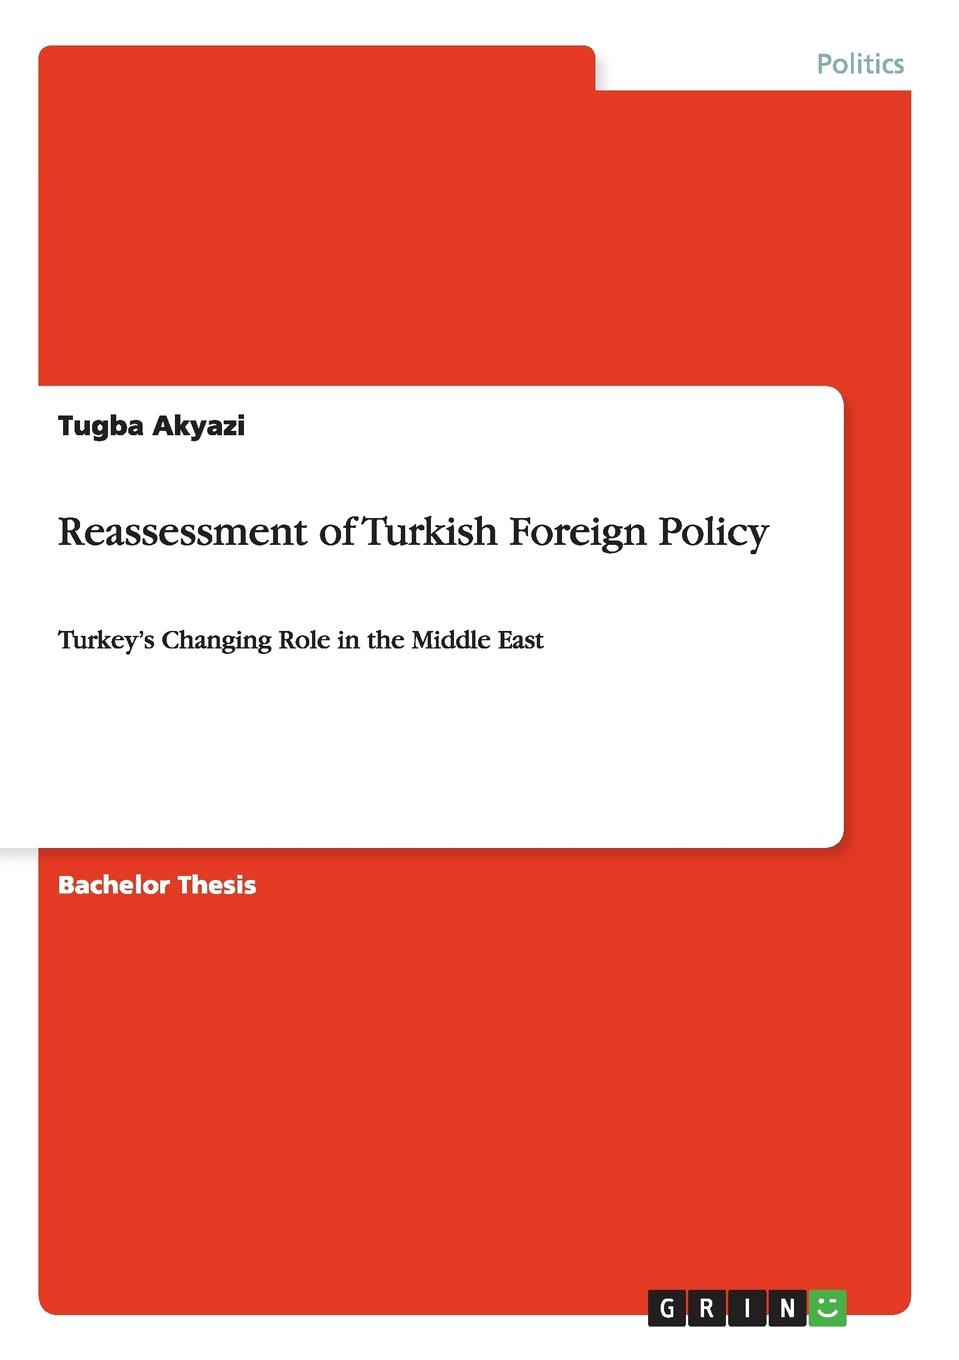 Tugba Akyazi Reassessment of Turkish Foreign Policy jeffrey lantis s us foreign policy in action an innovative teaching text